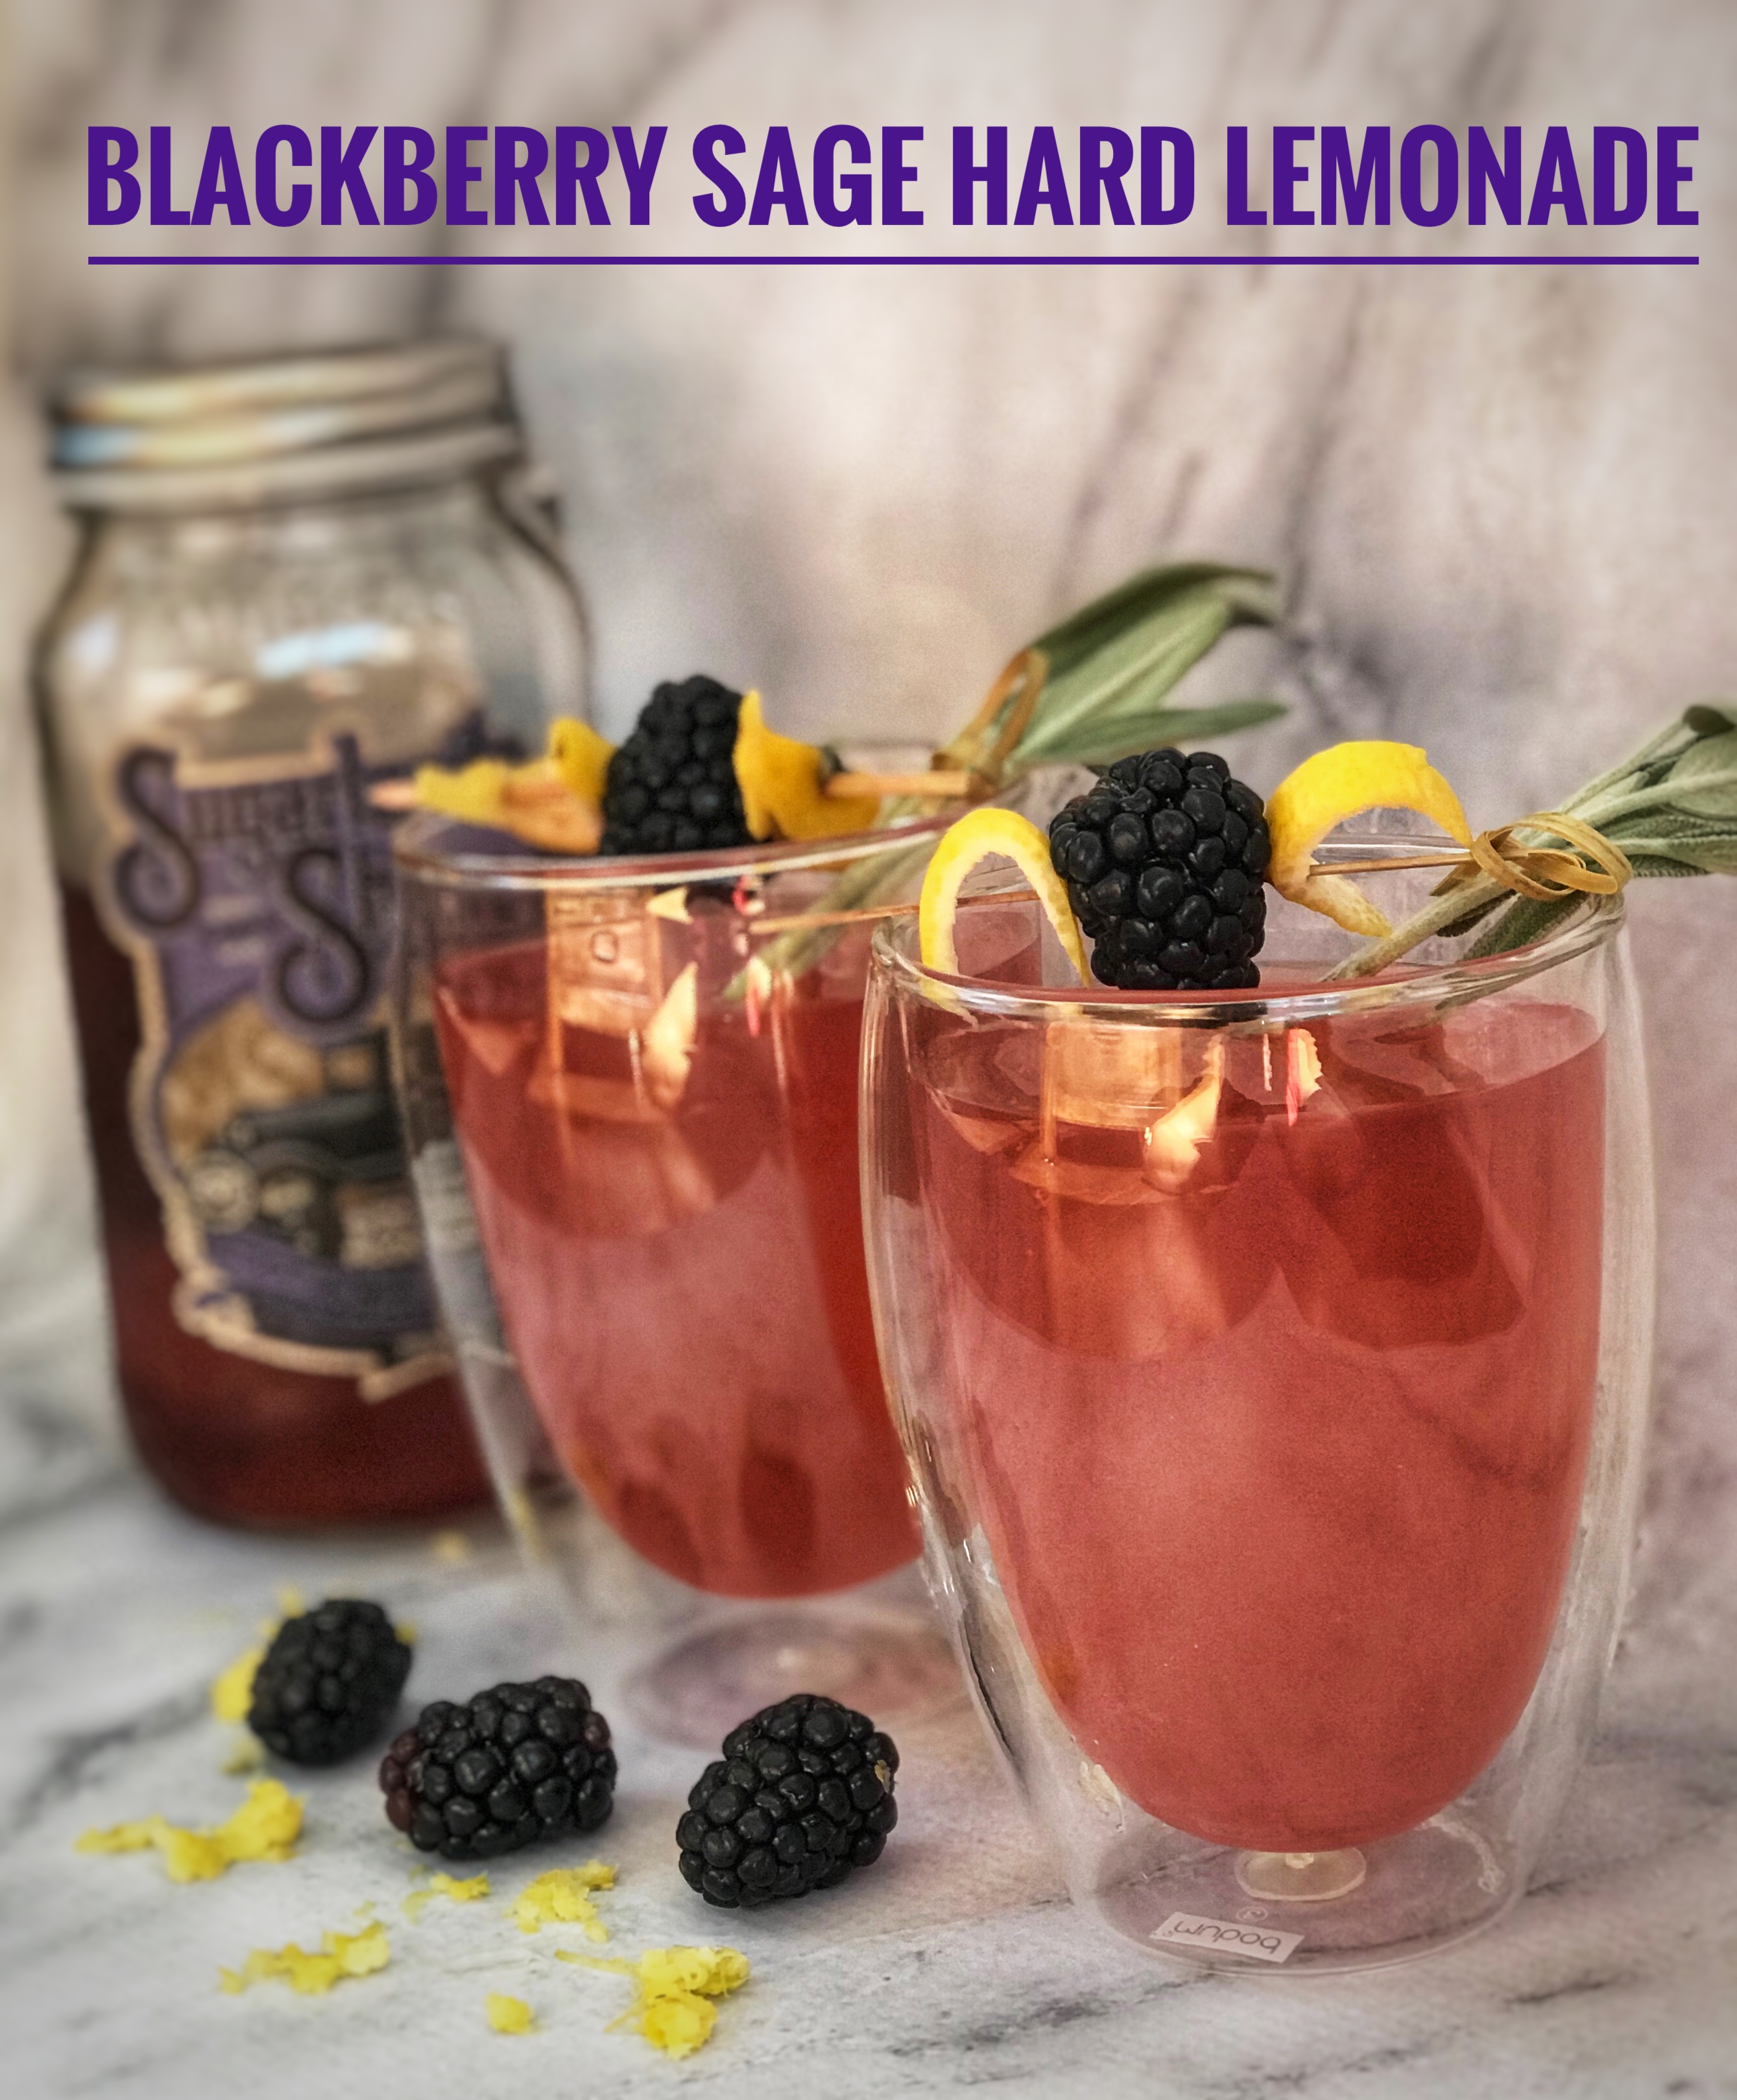 Sip on this perfect drink for summer! Featuring savory and sweet, this Blackberry Sage Cocktail is made with Sugarlands Blockader's Blackberry Moonshine and fresh lemonade. It's delicious! #AD